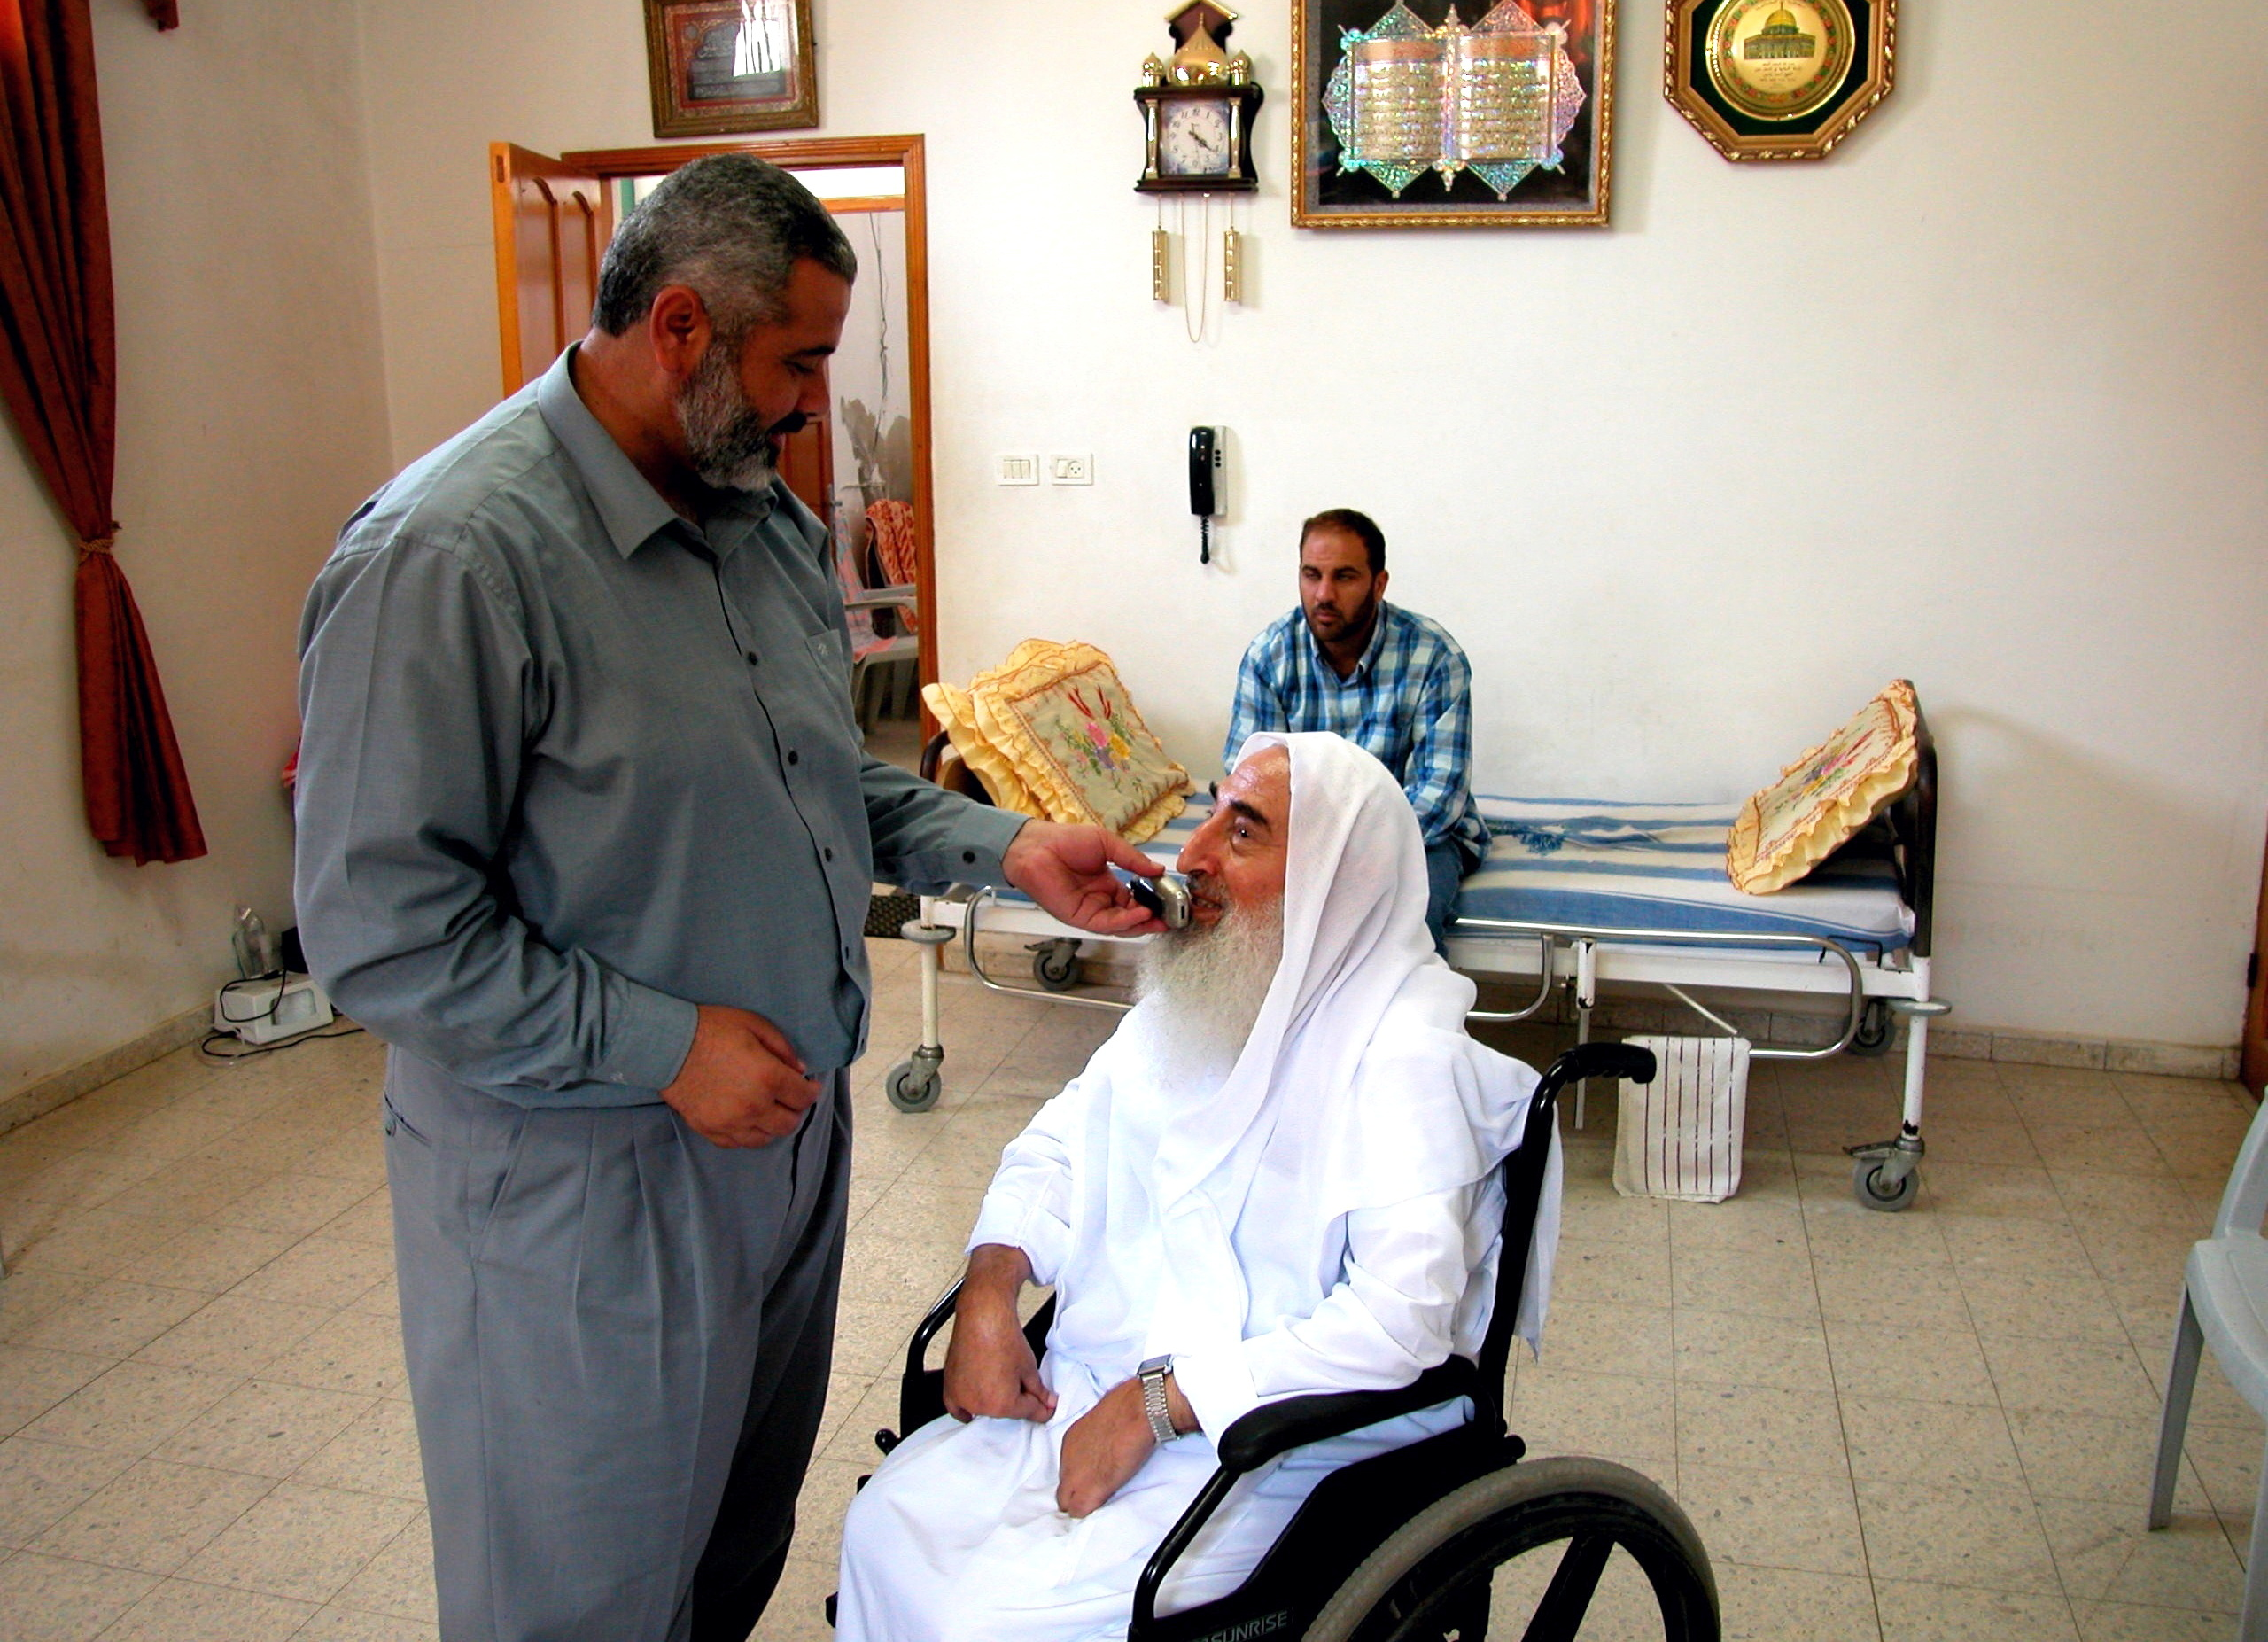 Palestinian Hamas official Ismail Haniyeh assists Hamas co-founder Ahmed Yassin in taking a phone call in Gaza City, Palestinian Territories June 13, 2003. Picture taken June 13, 2003. REUTERS/Stephen Farrell/Files